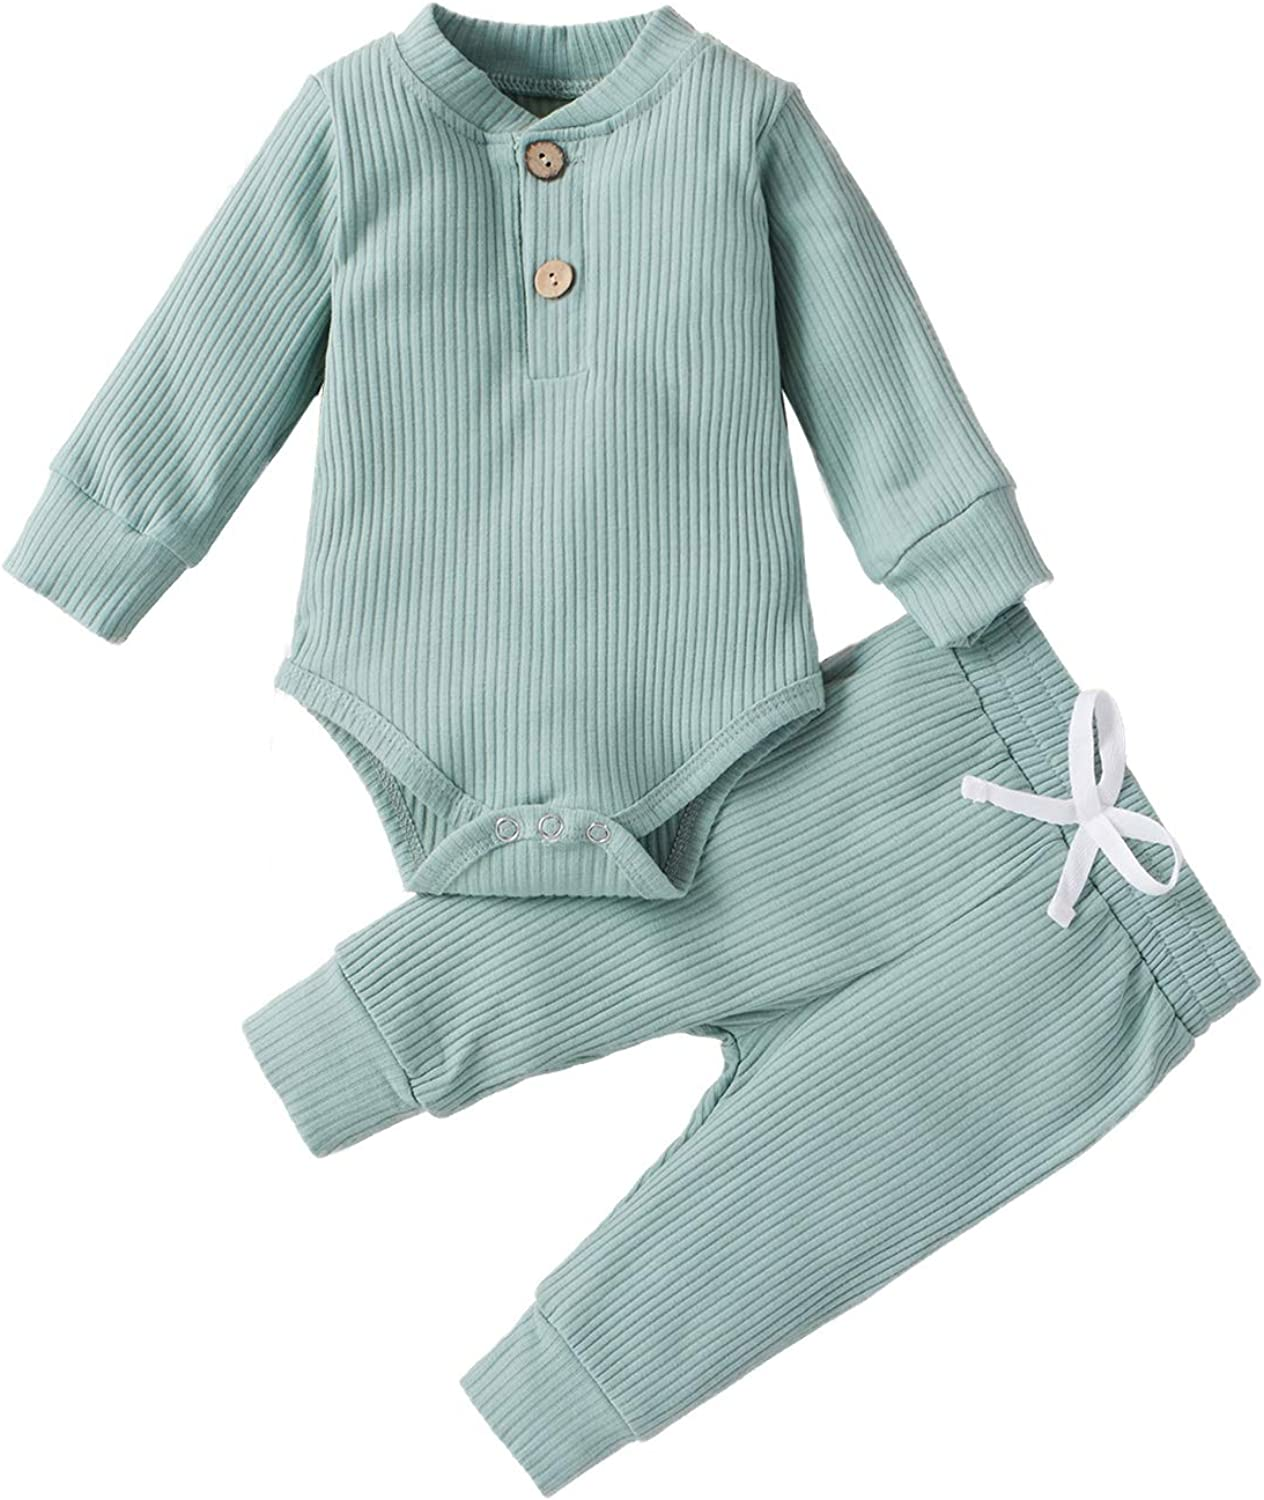 CETEPY Baby Boy Girl Clothes Infant Summer Outfits Solid Knit Ribbed Long Romper + Pants